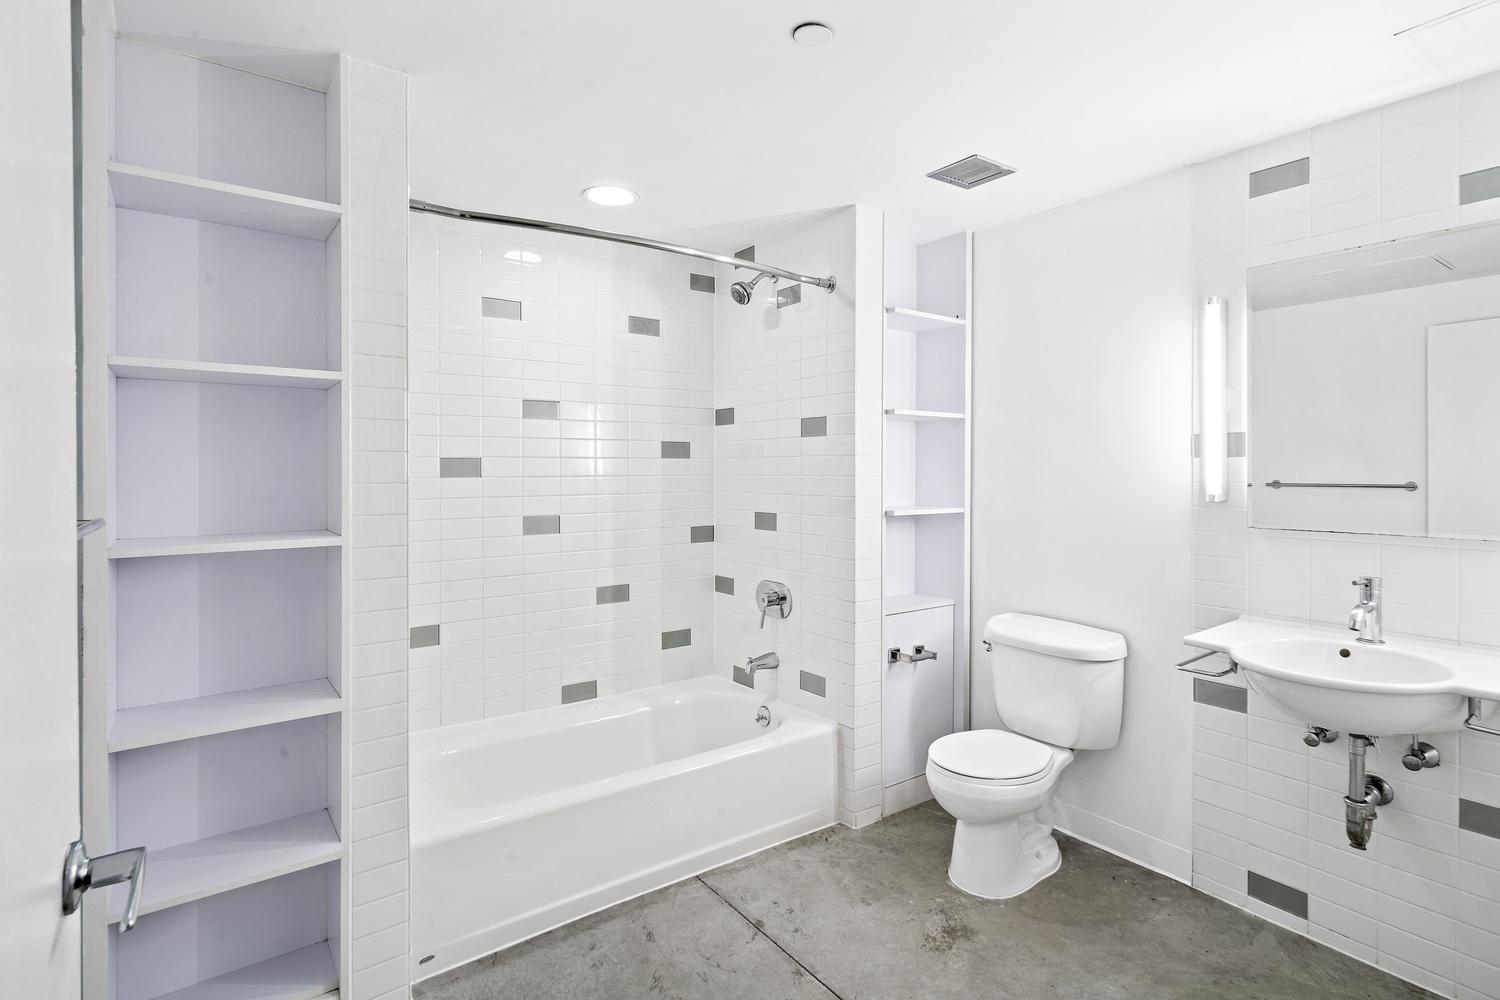 A bathroom with white tiles on the walls and a toilet on top of a marbled floor.